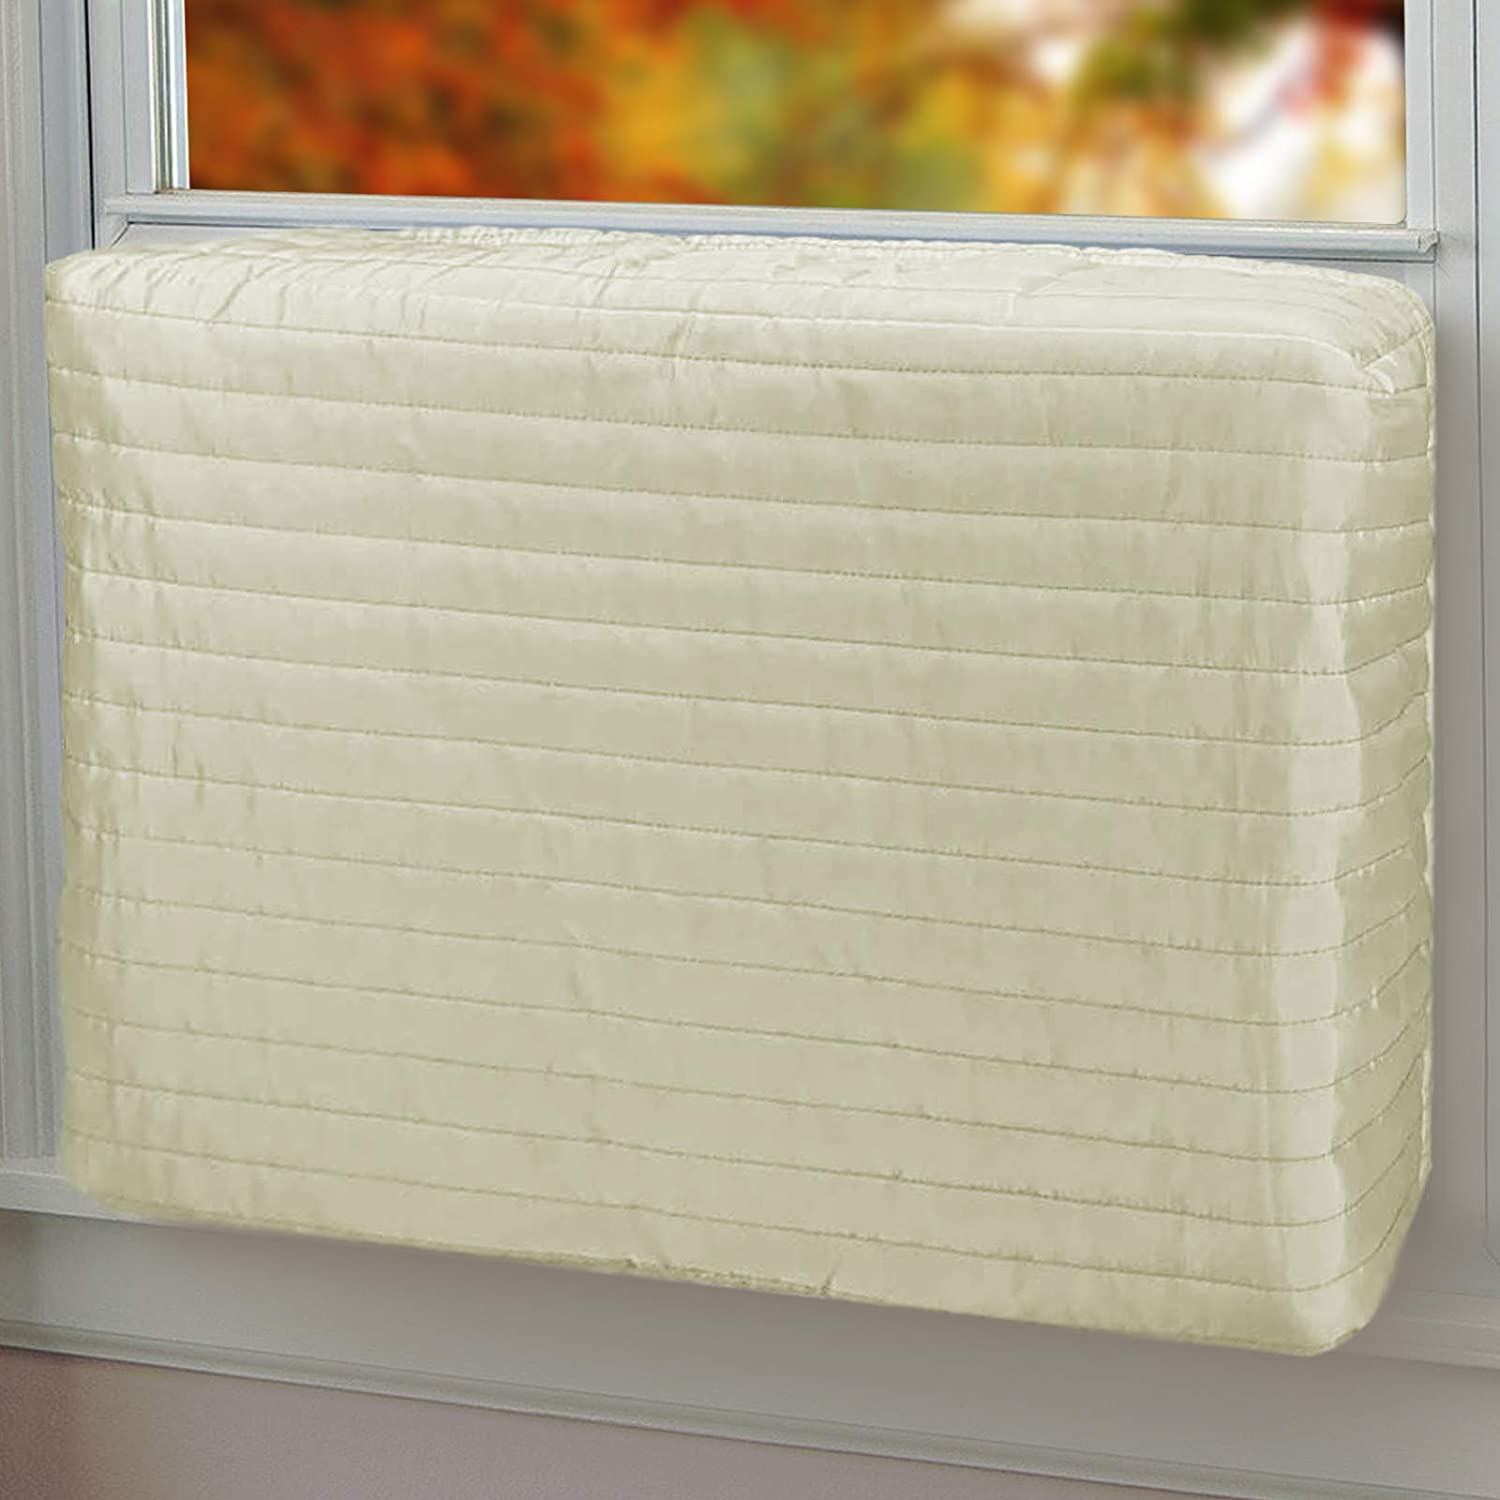 Homydom Indoor Air Conditioner Cover Double Insulation S